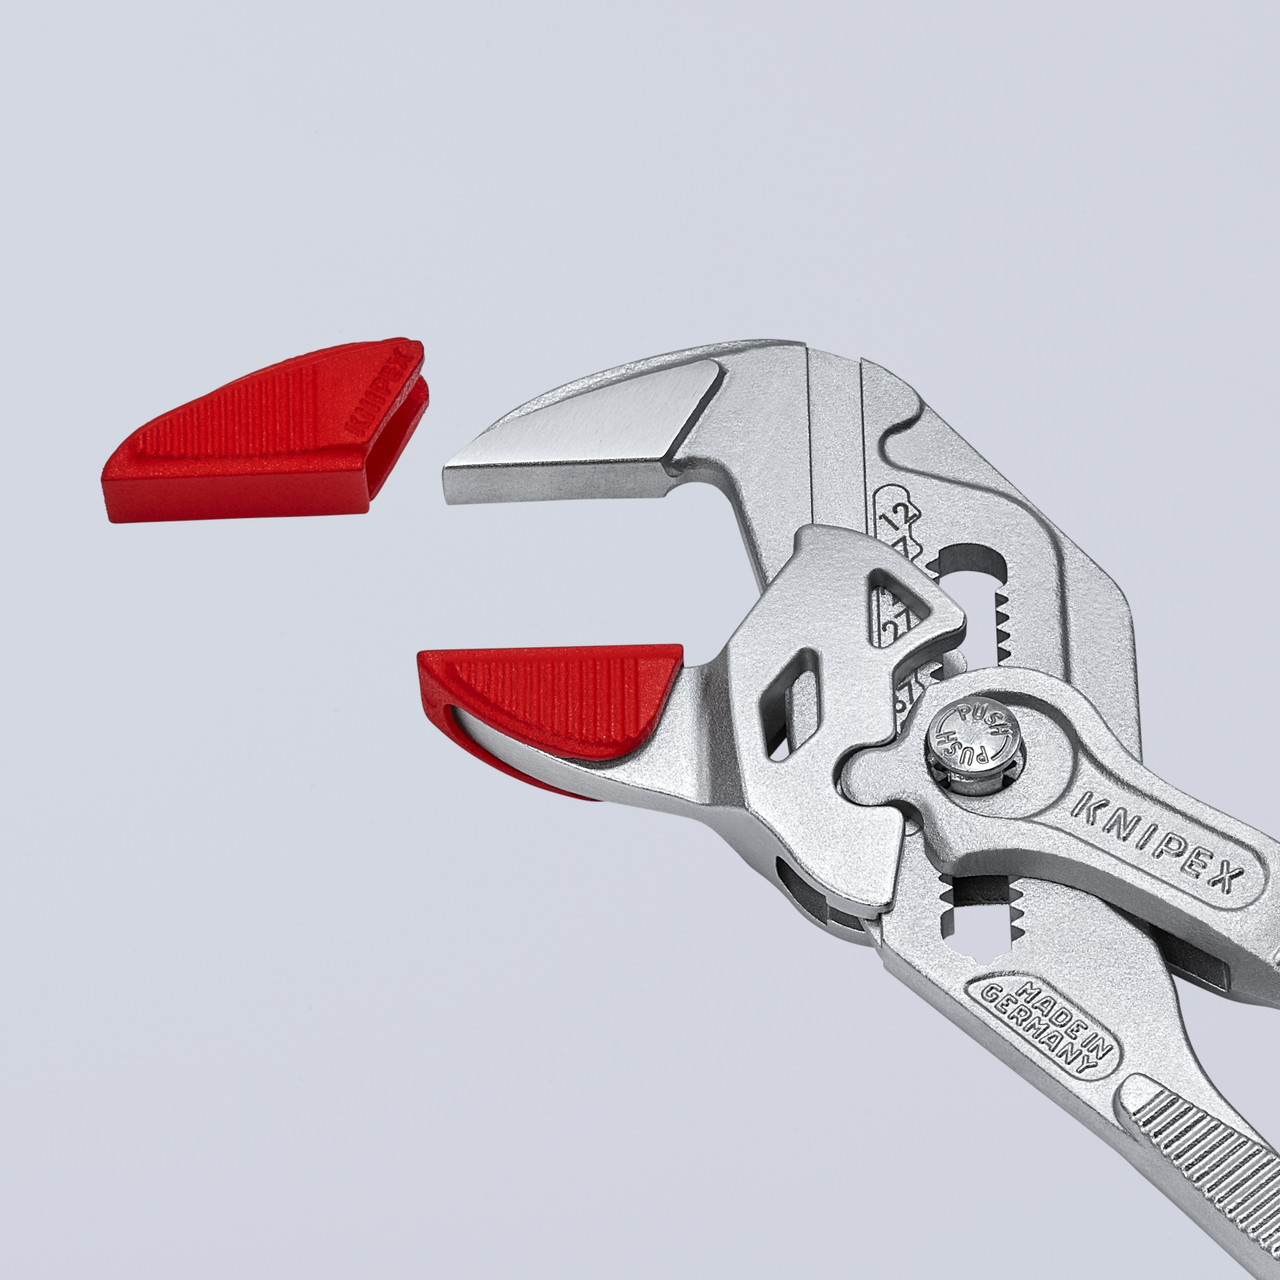 KNIPEX 8643250 Alligator Adjustable Gripping Pliers